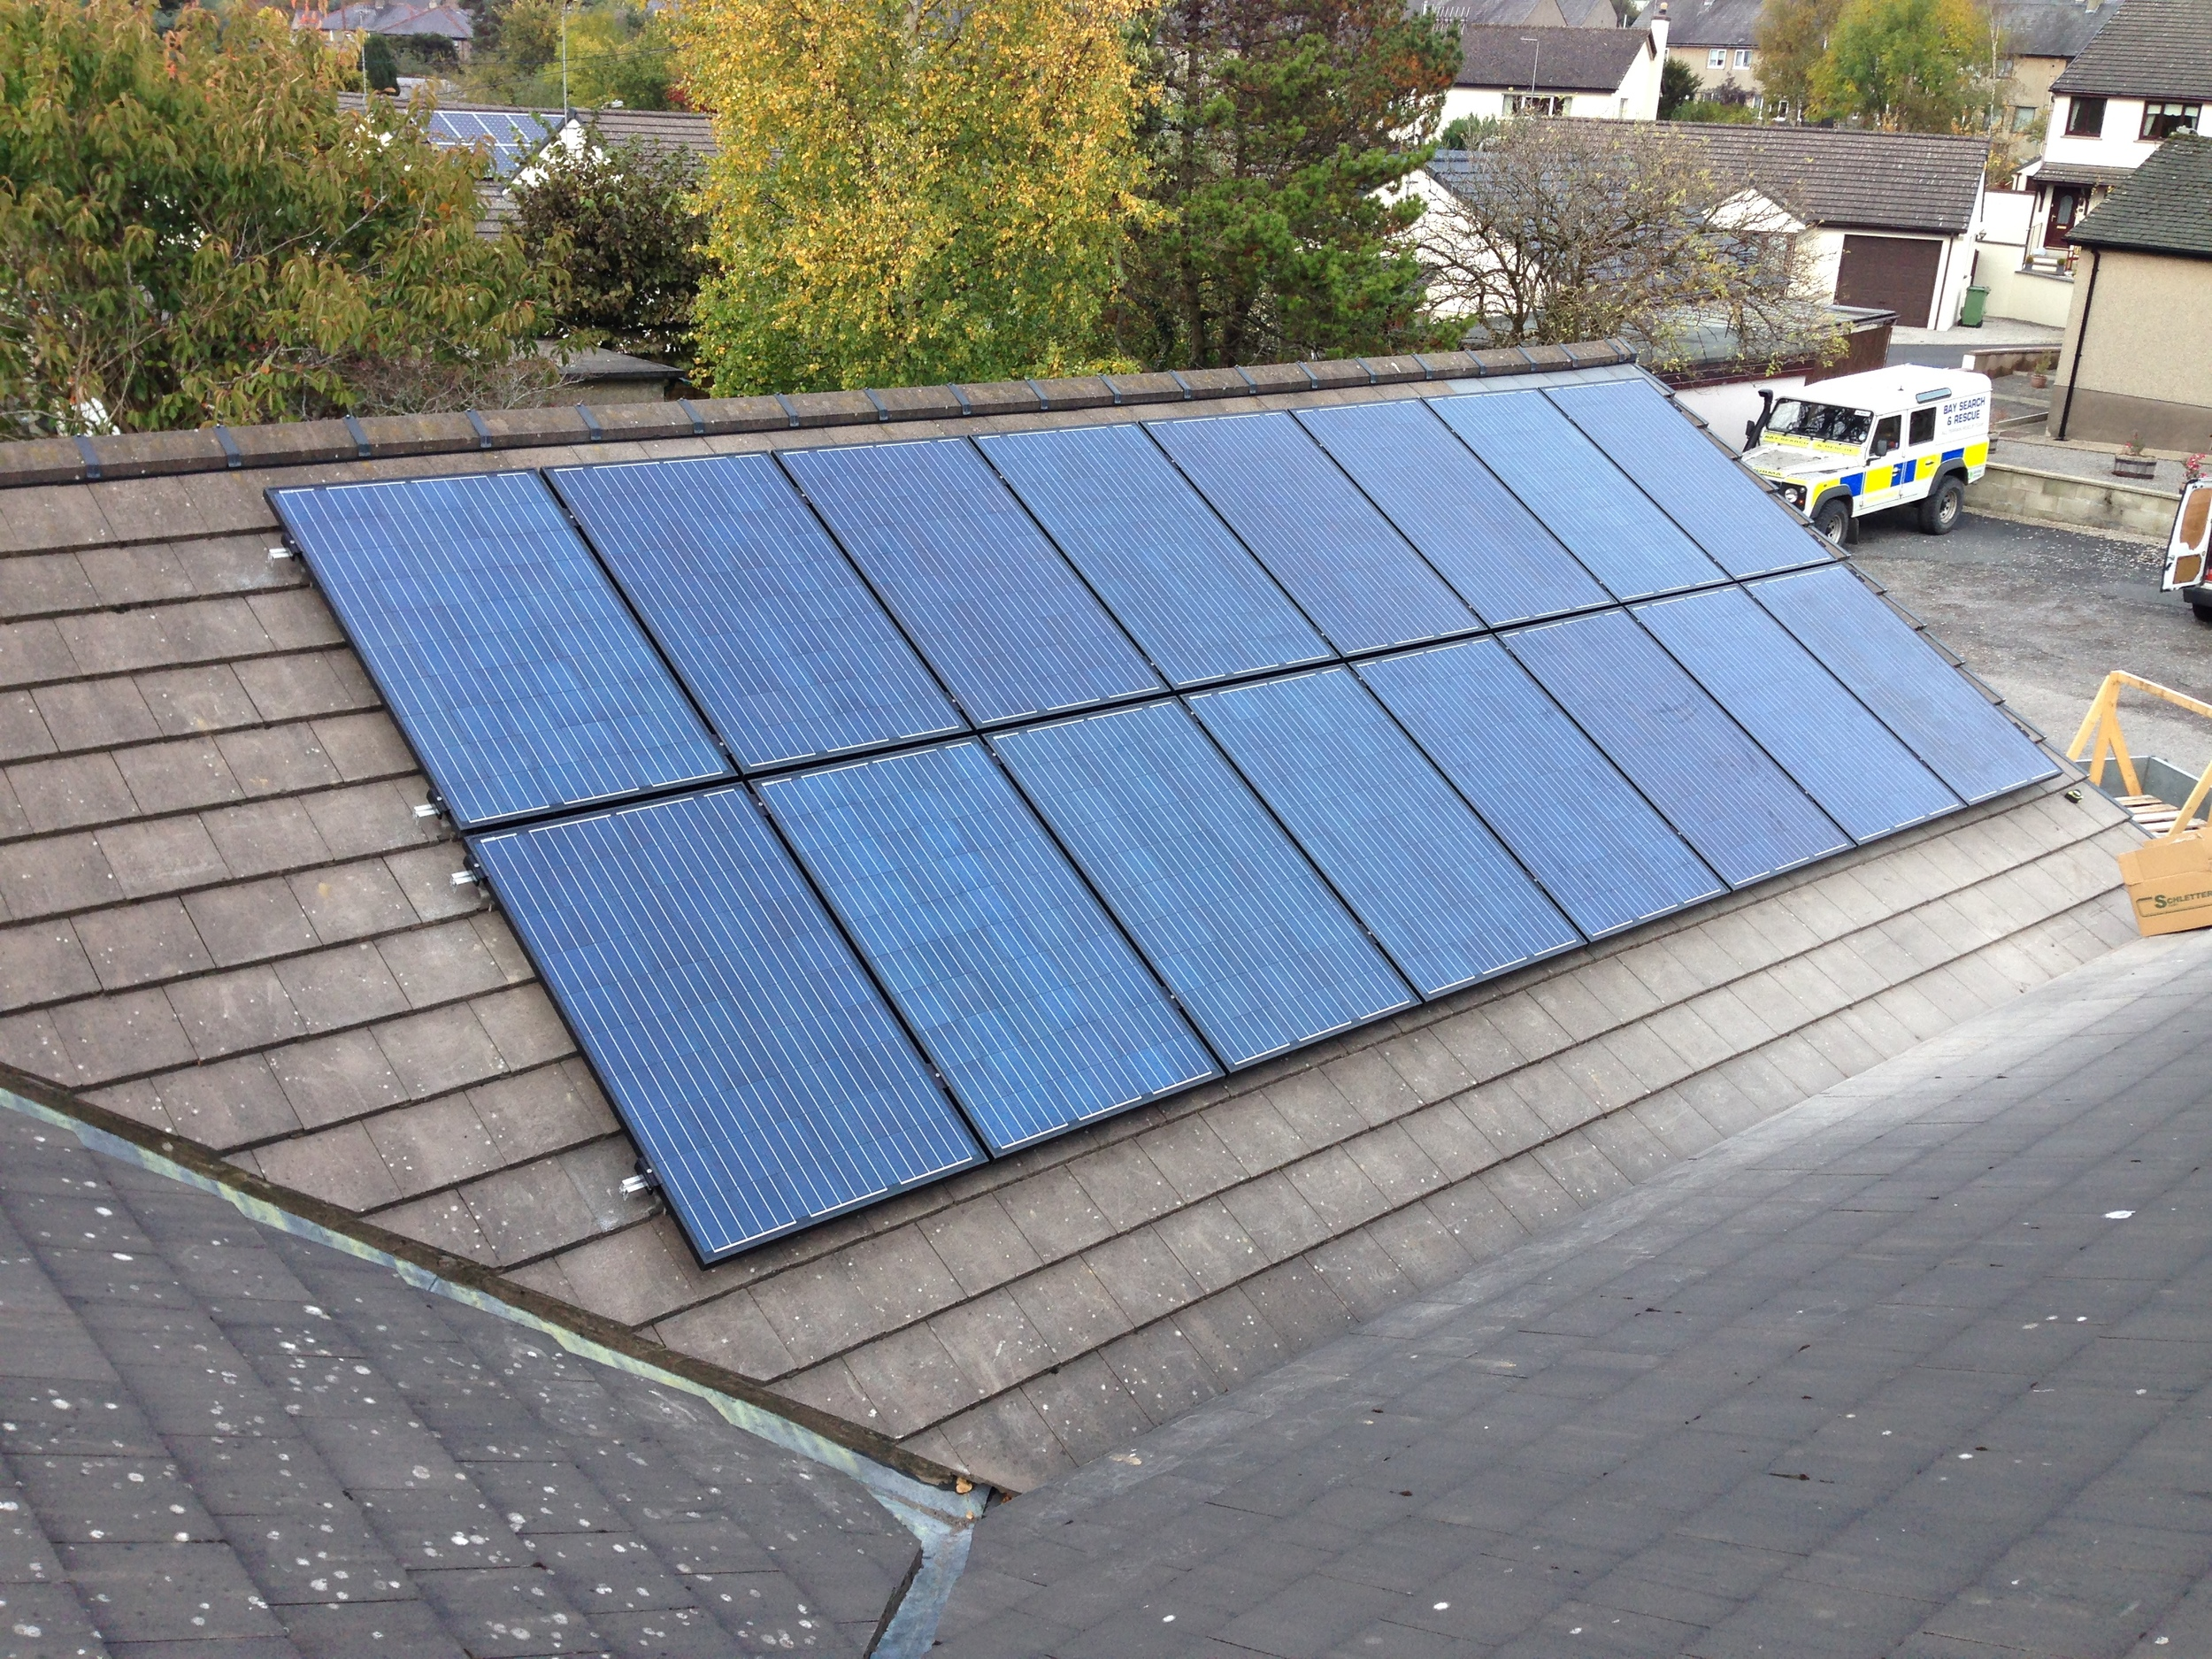 Solar panels are long-lasting and require little upkeep.